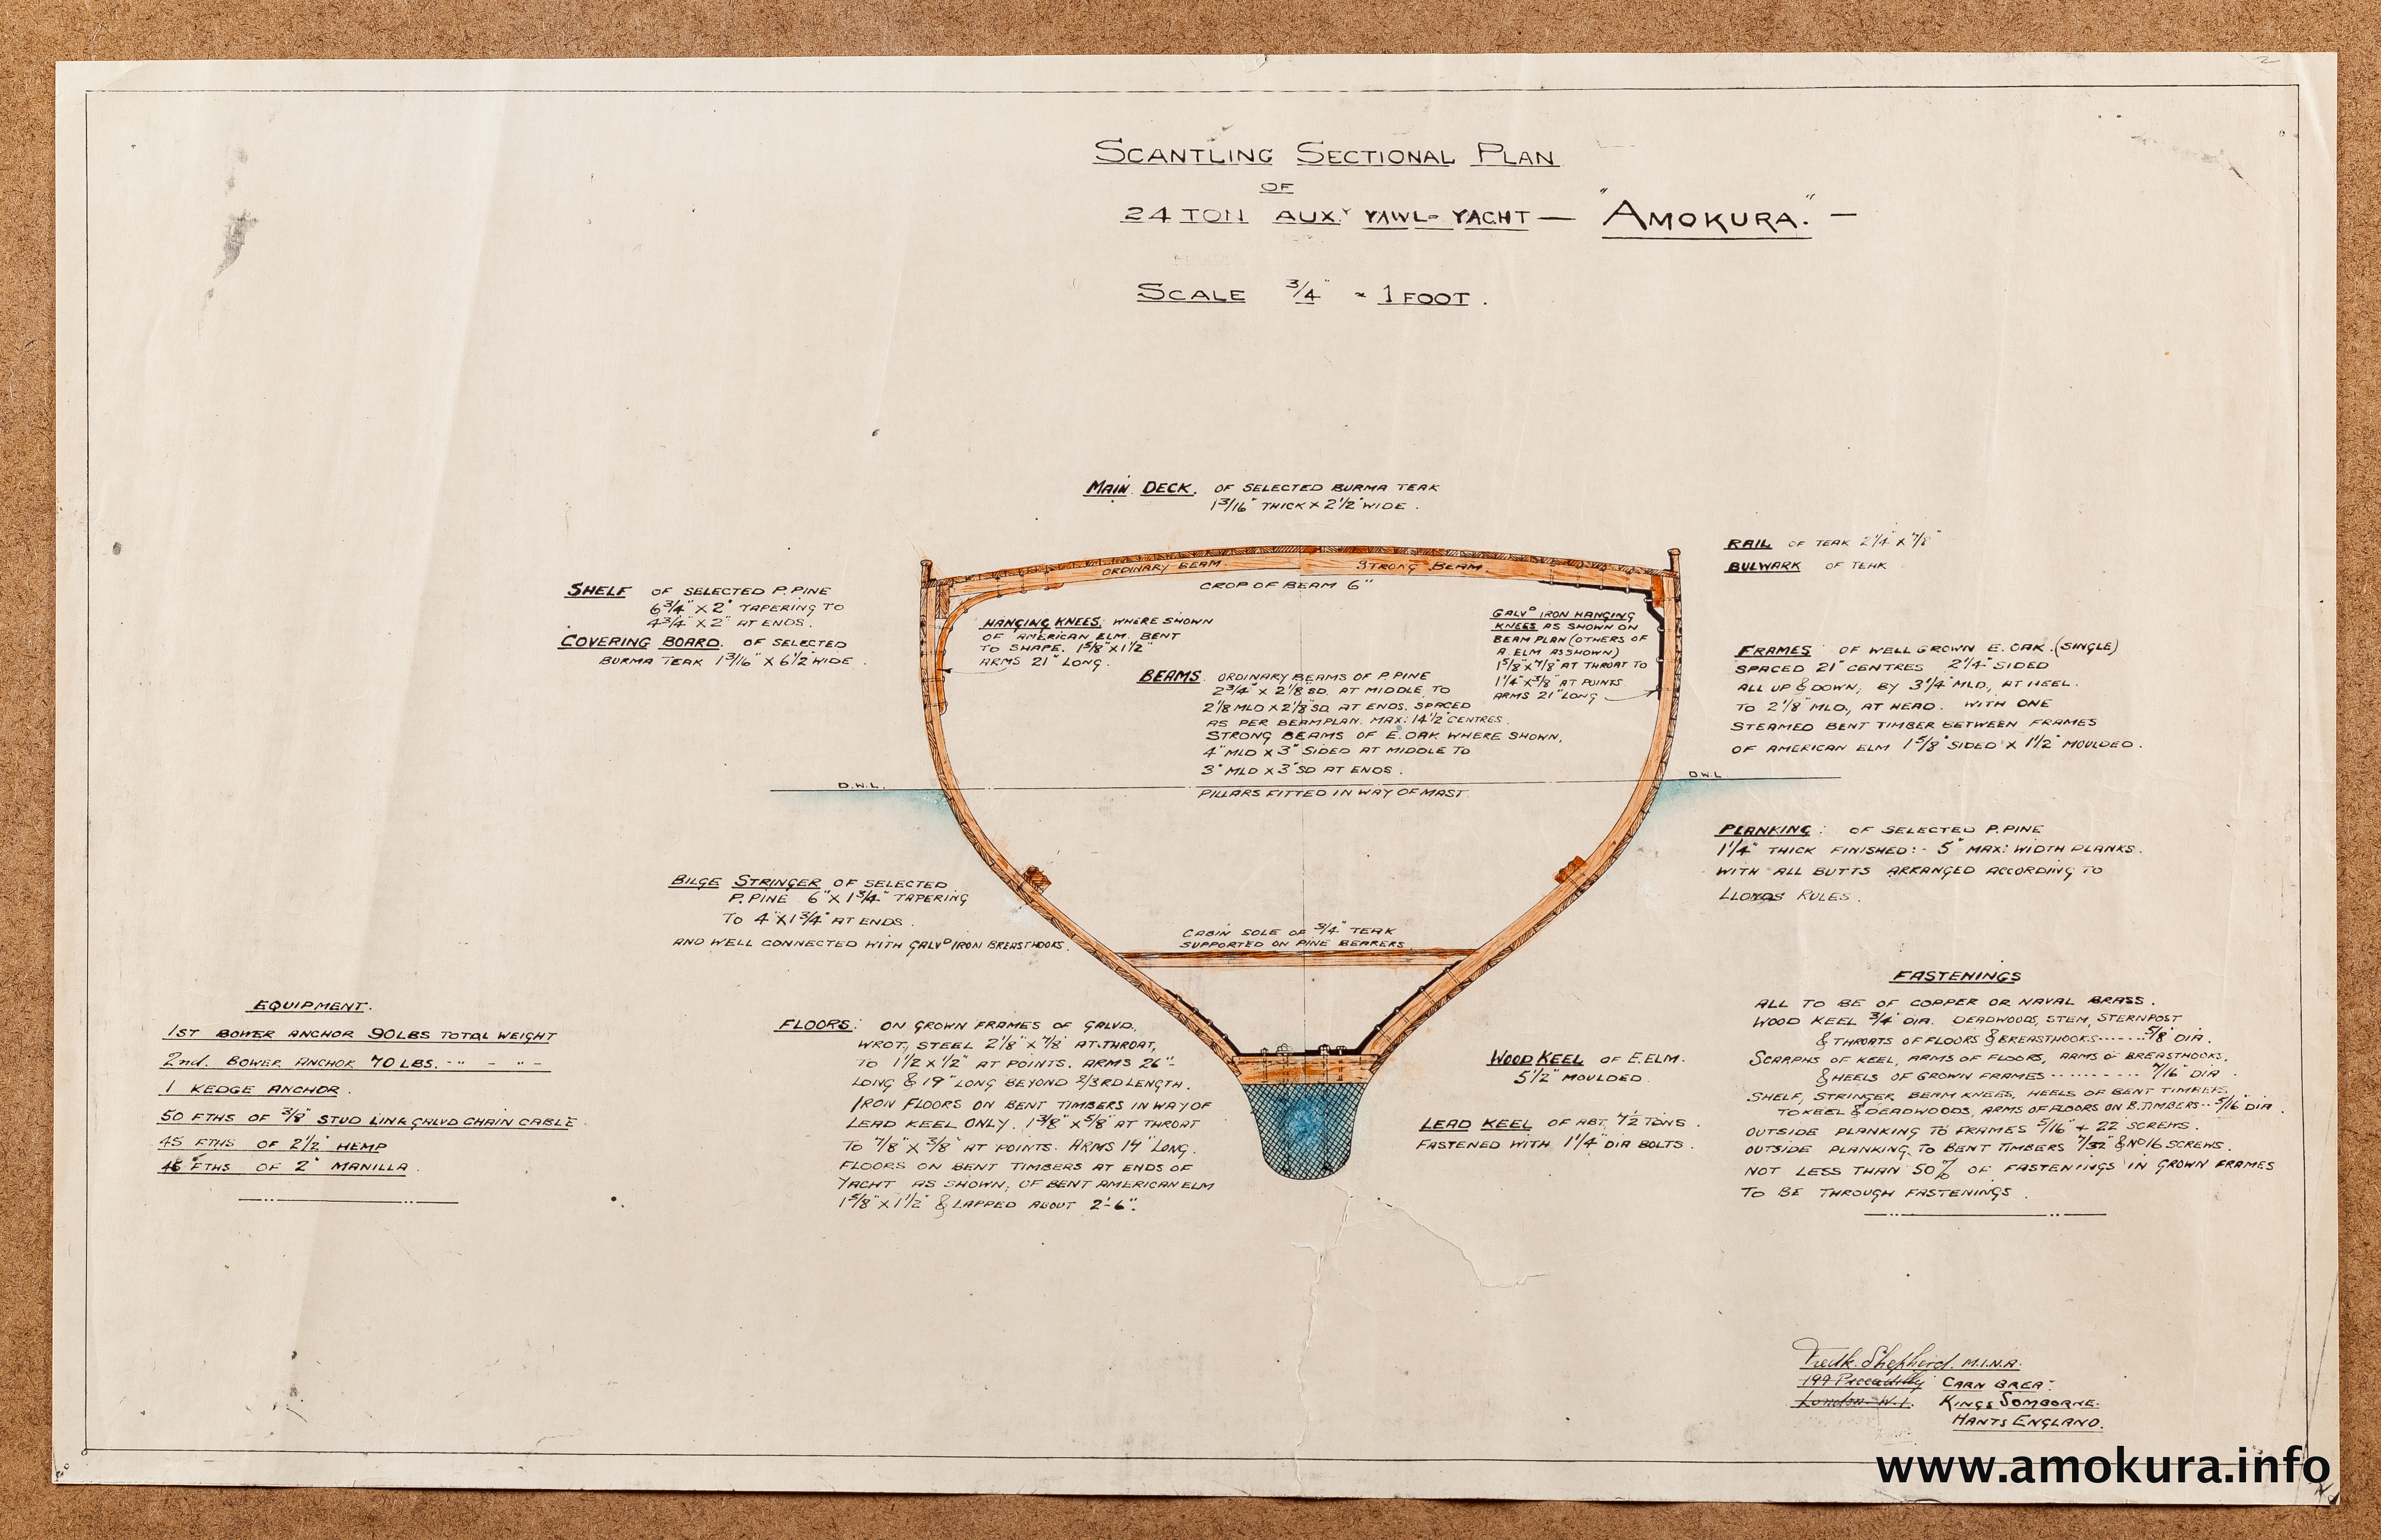 Scantling sectional plans - hand coloured with manuscript notes (1939)